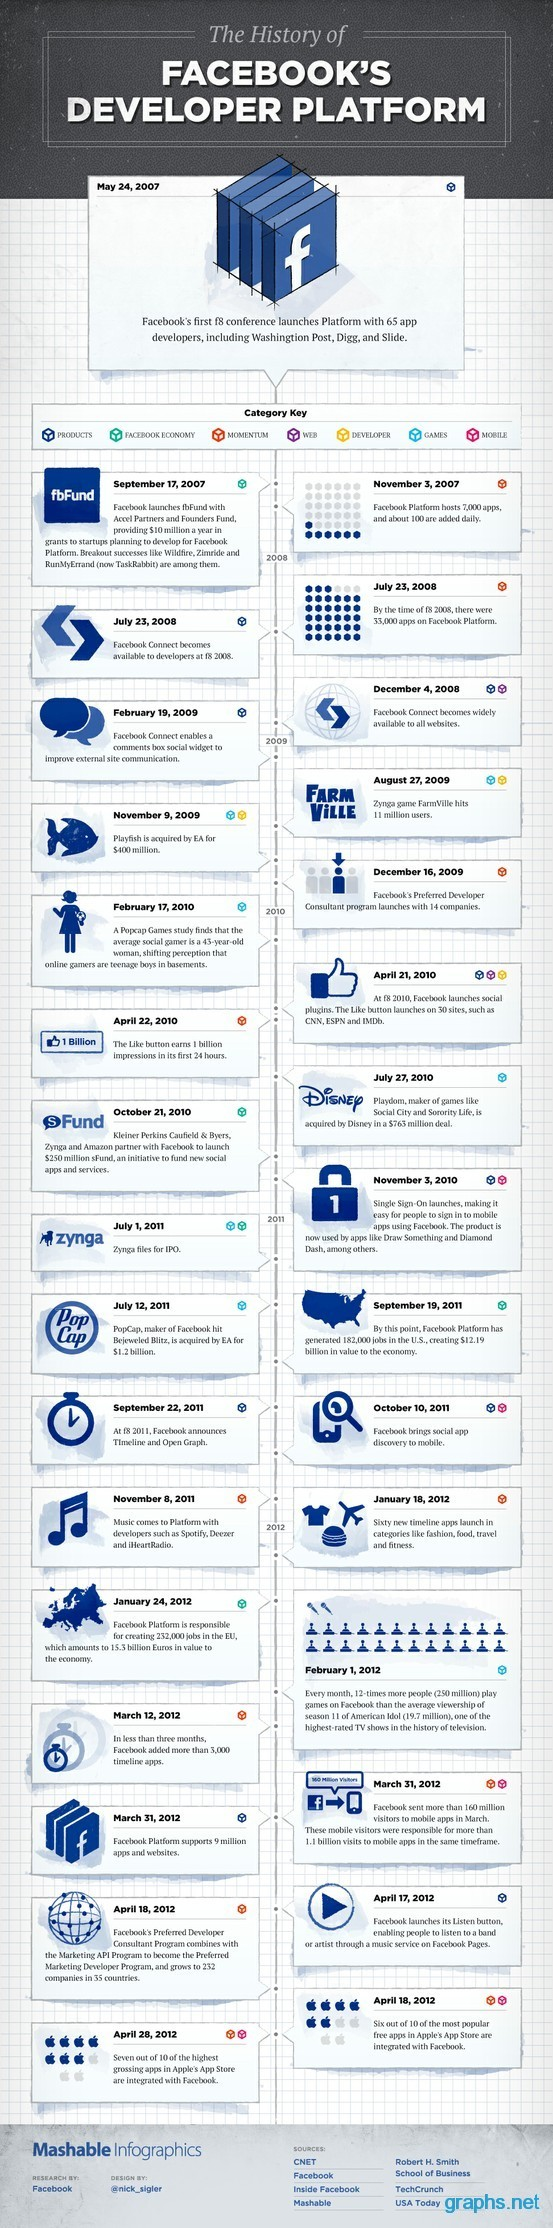 Facebook Developer Platform History